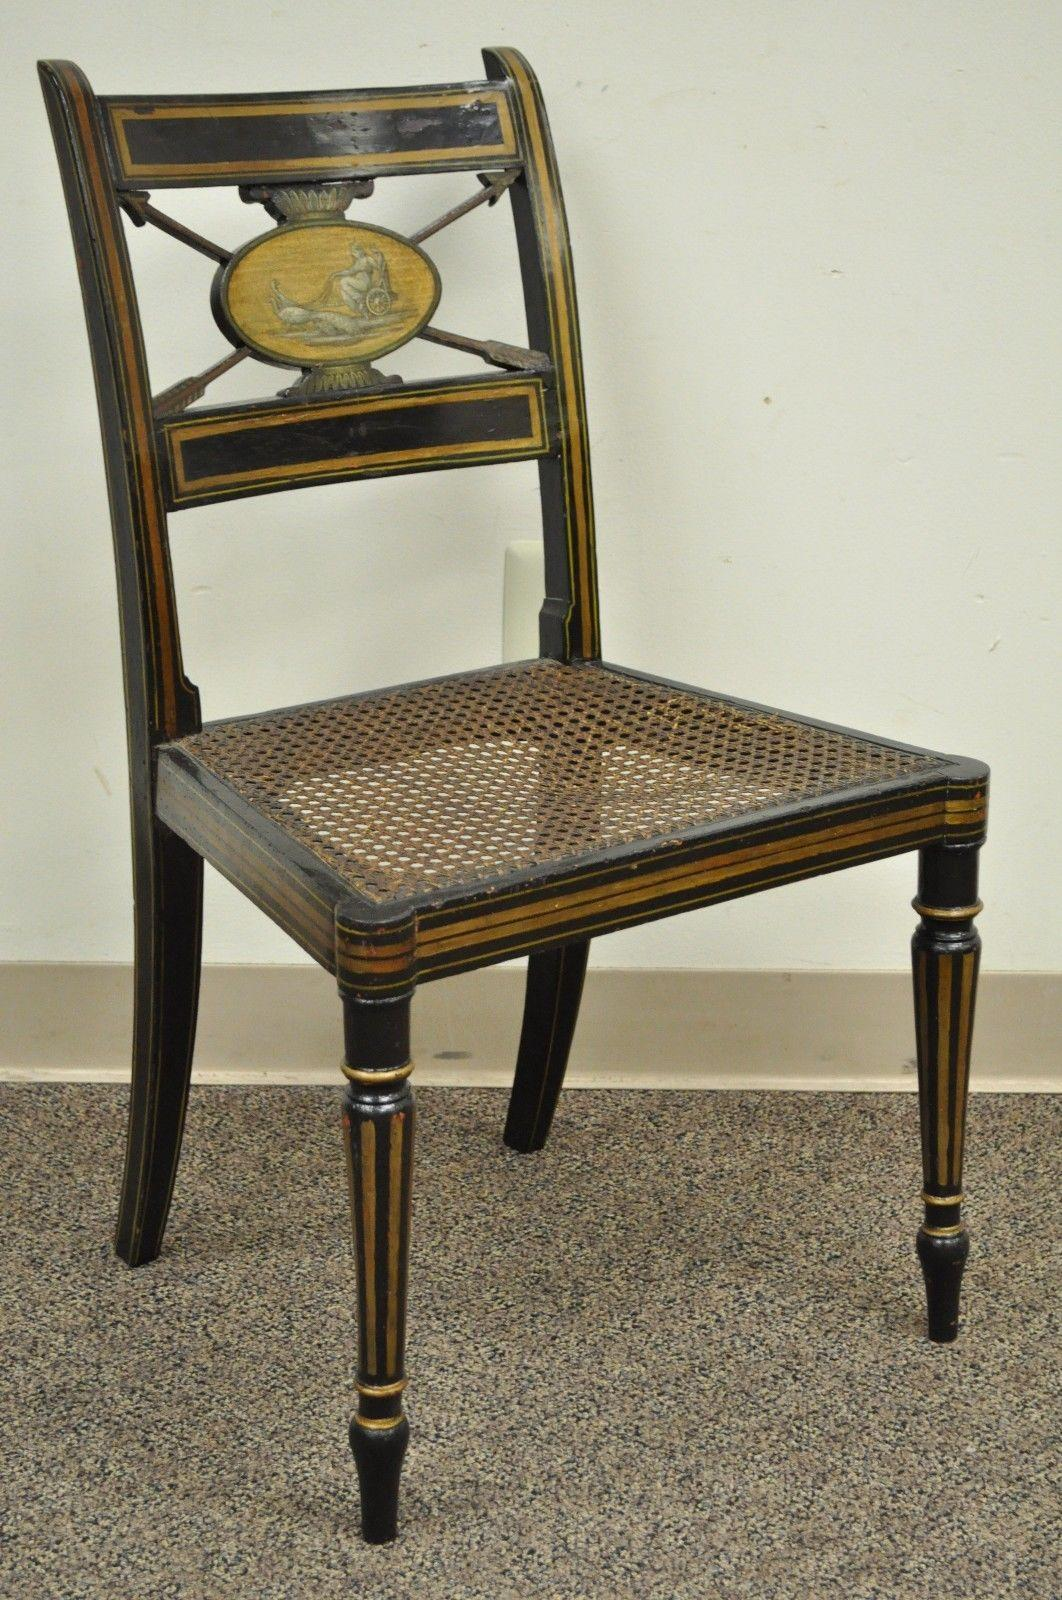 Antique Accent Chairs Antique Neoclassical Black Lacquered Desk Telephone Table Stand And Accent Chair